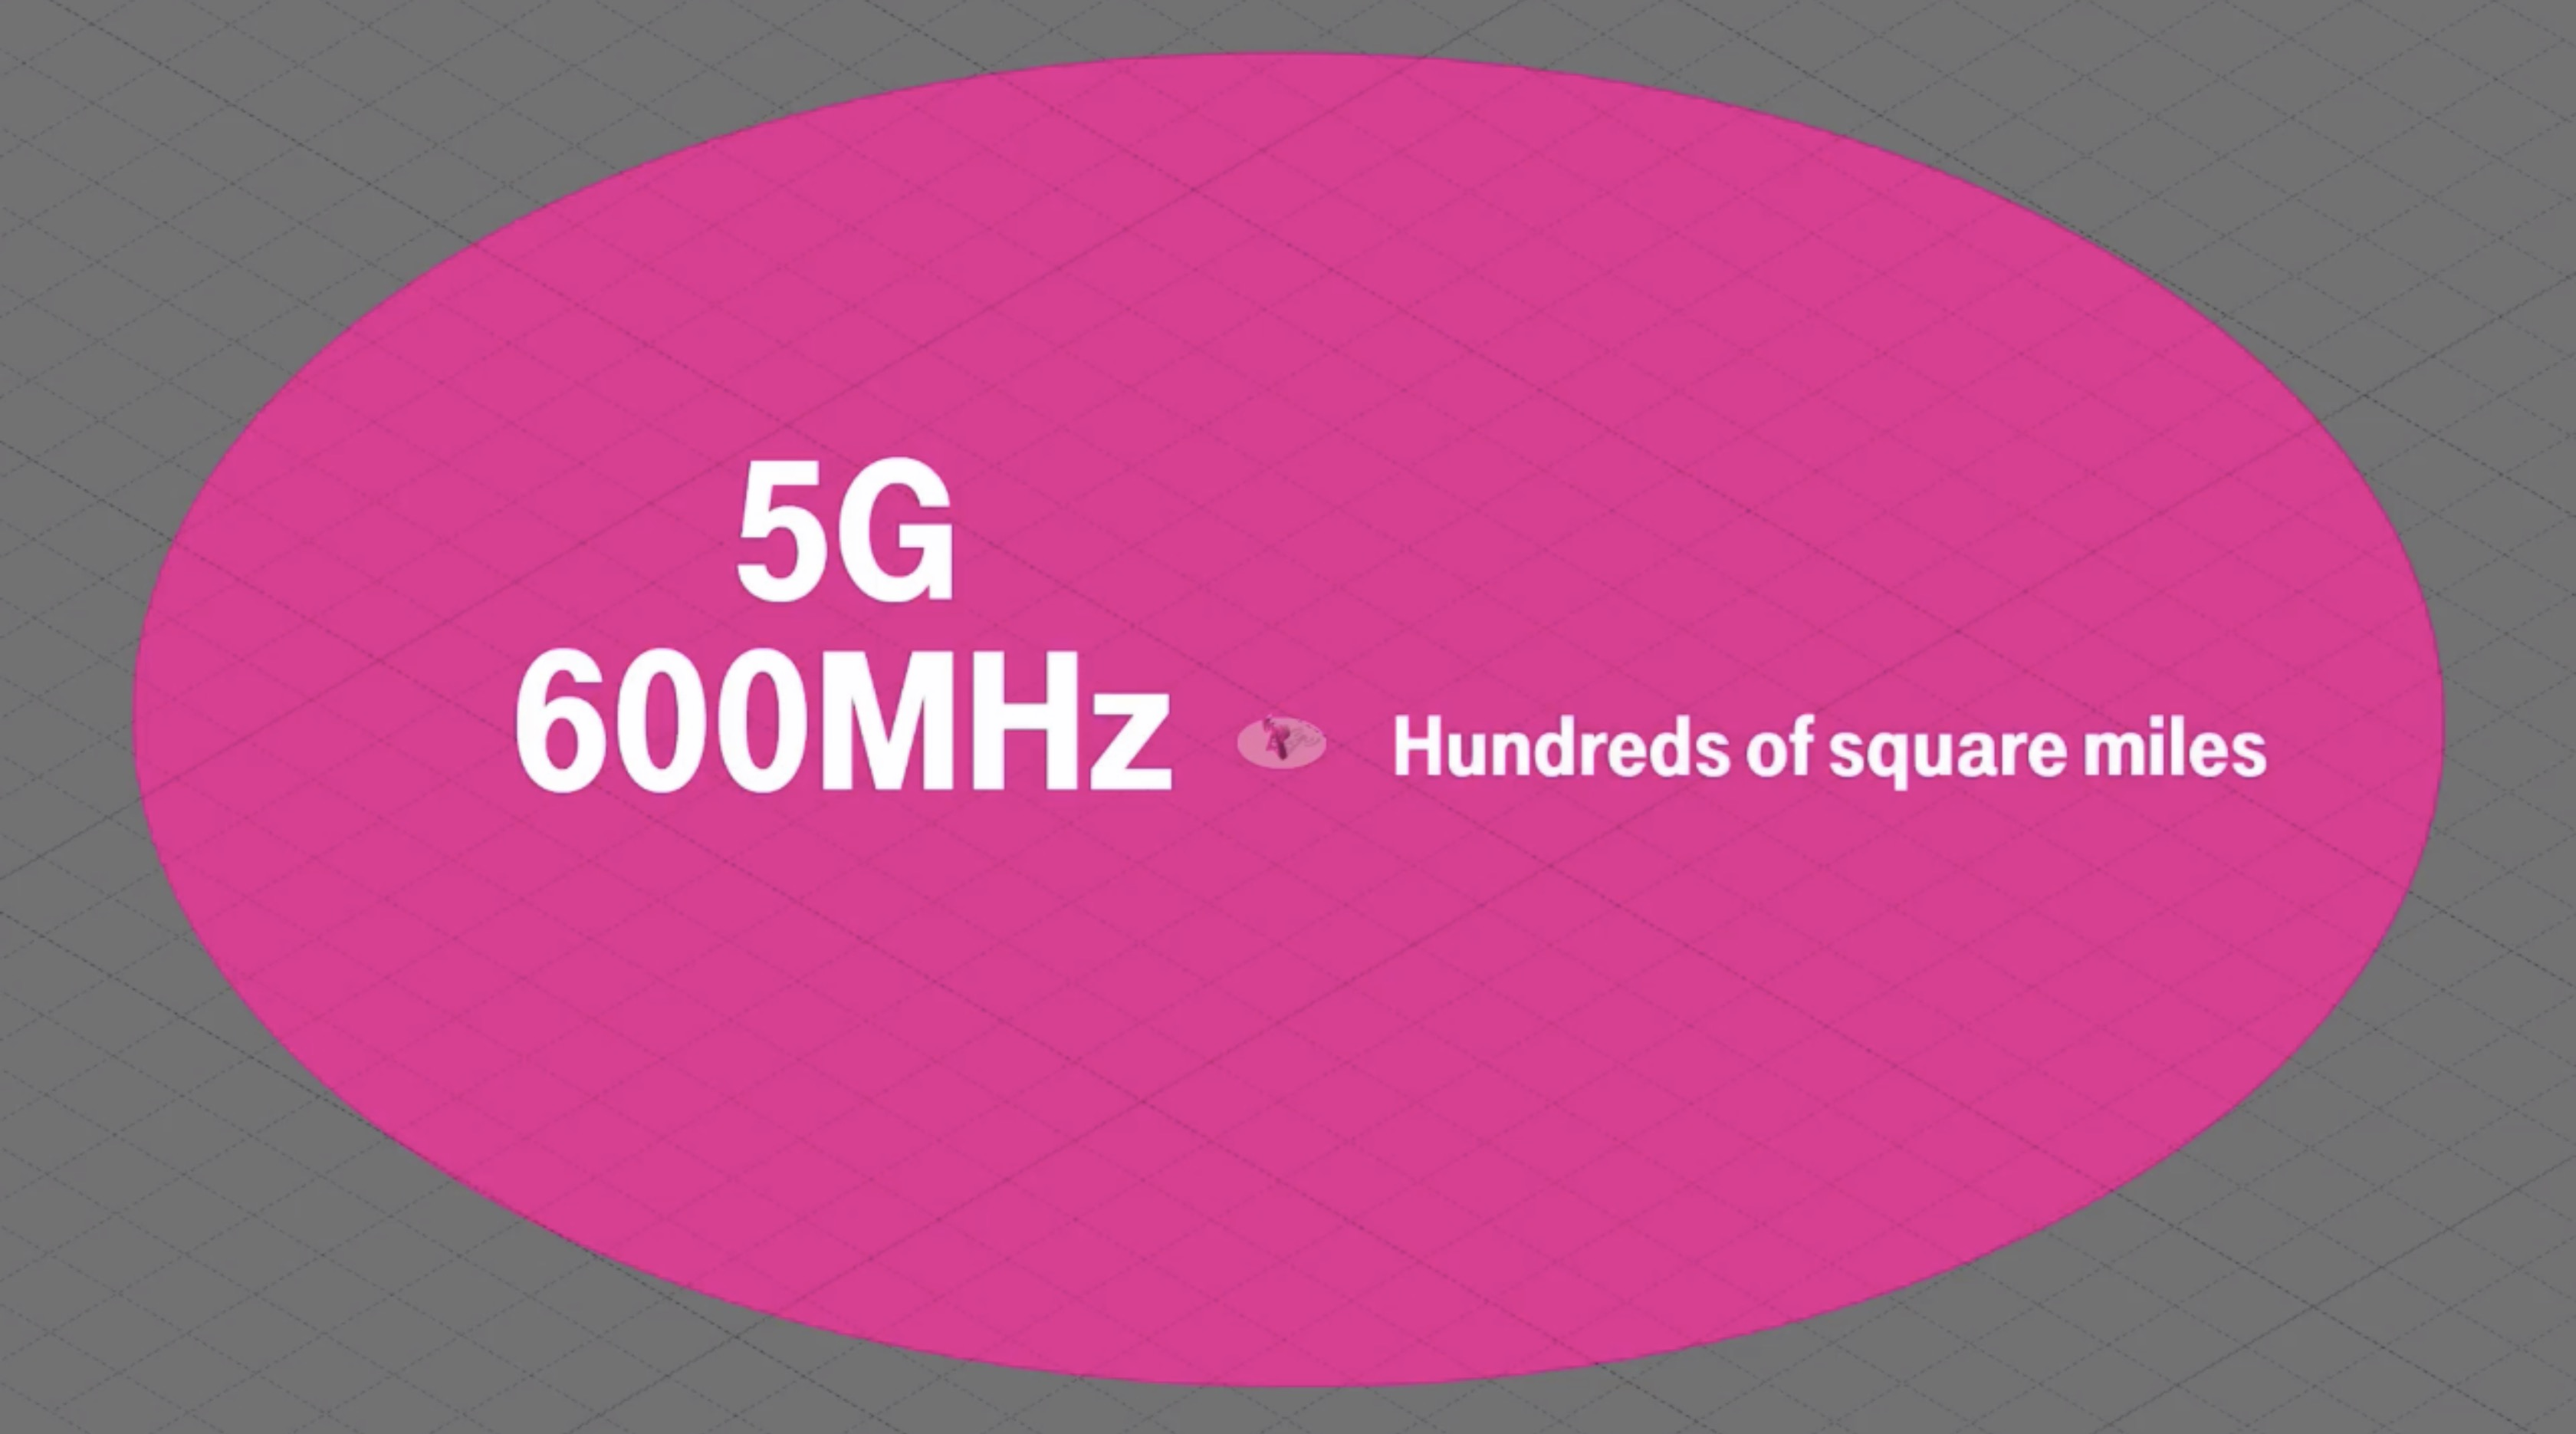 T-Mobile brings 5G to 600MHz spectrum, paving way for national